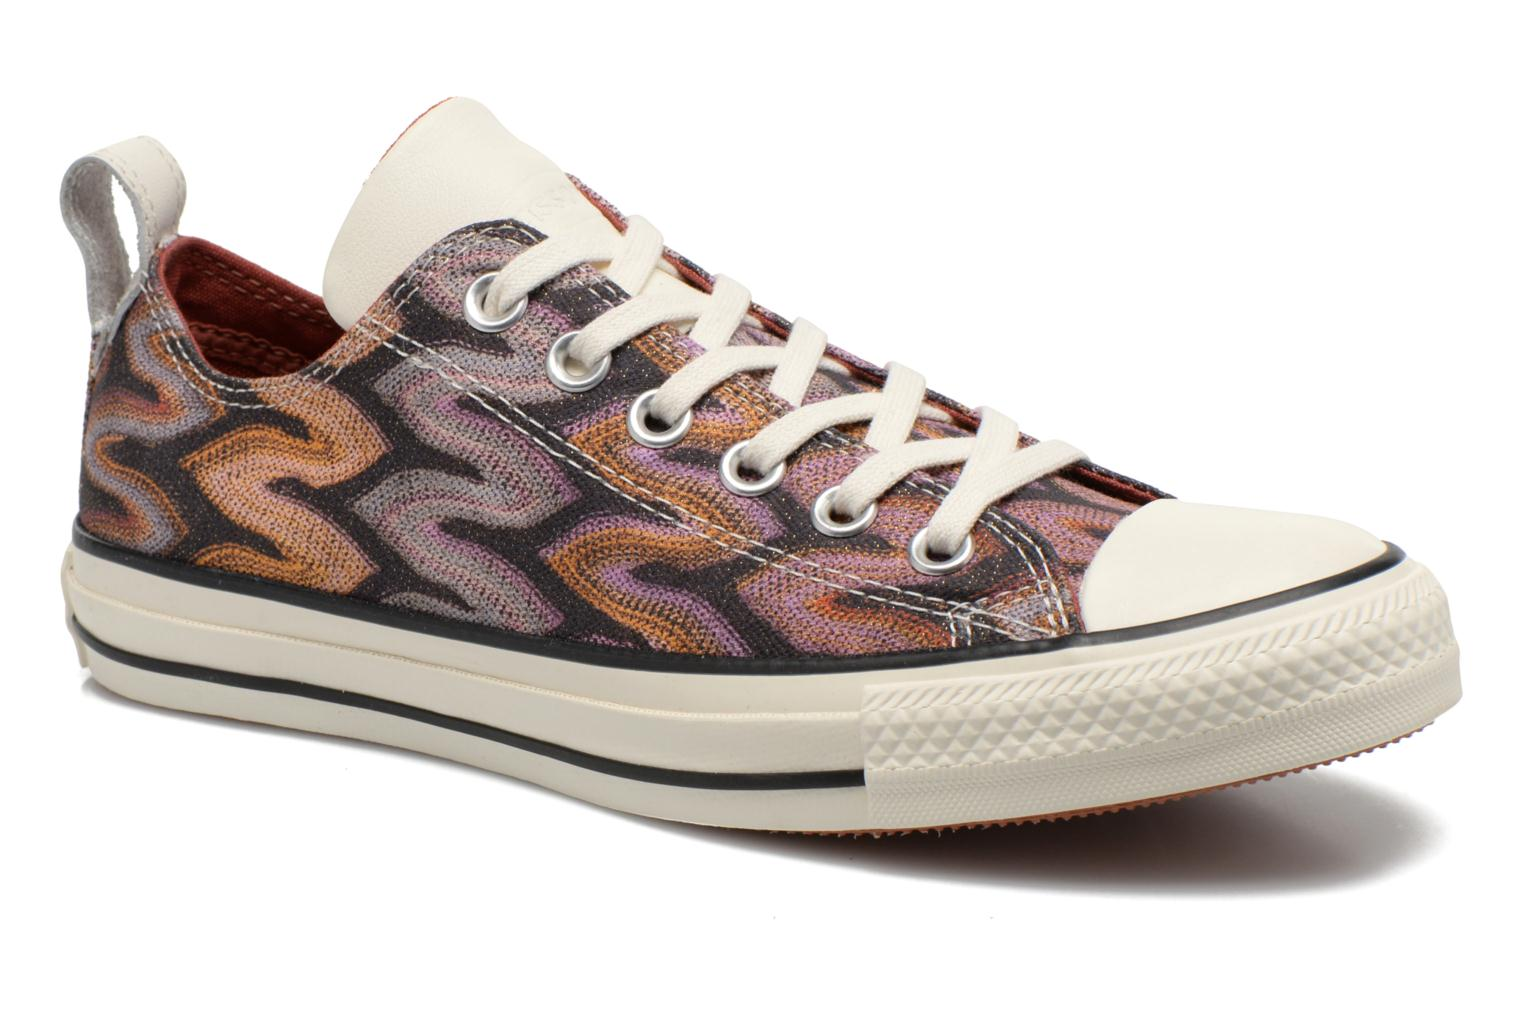 Converse Chuck Taylor All Star Missoni Ox W Multicolore FjZ6wJjdnm